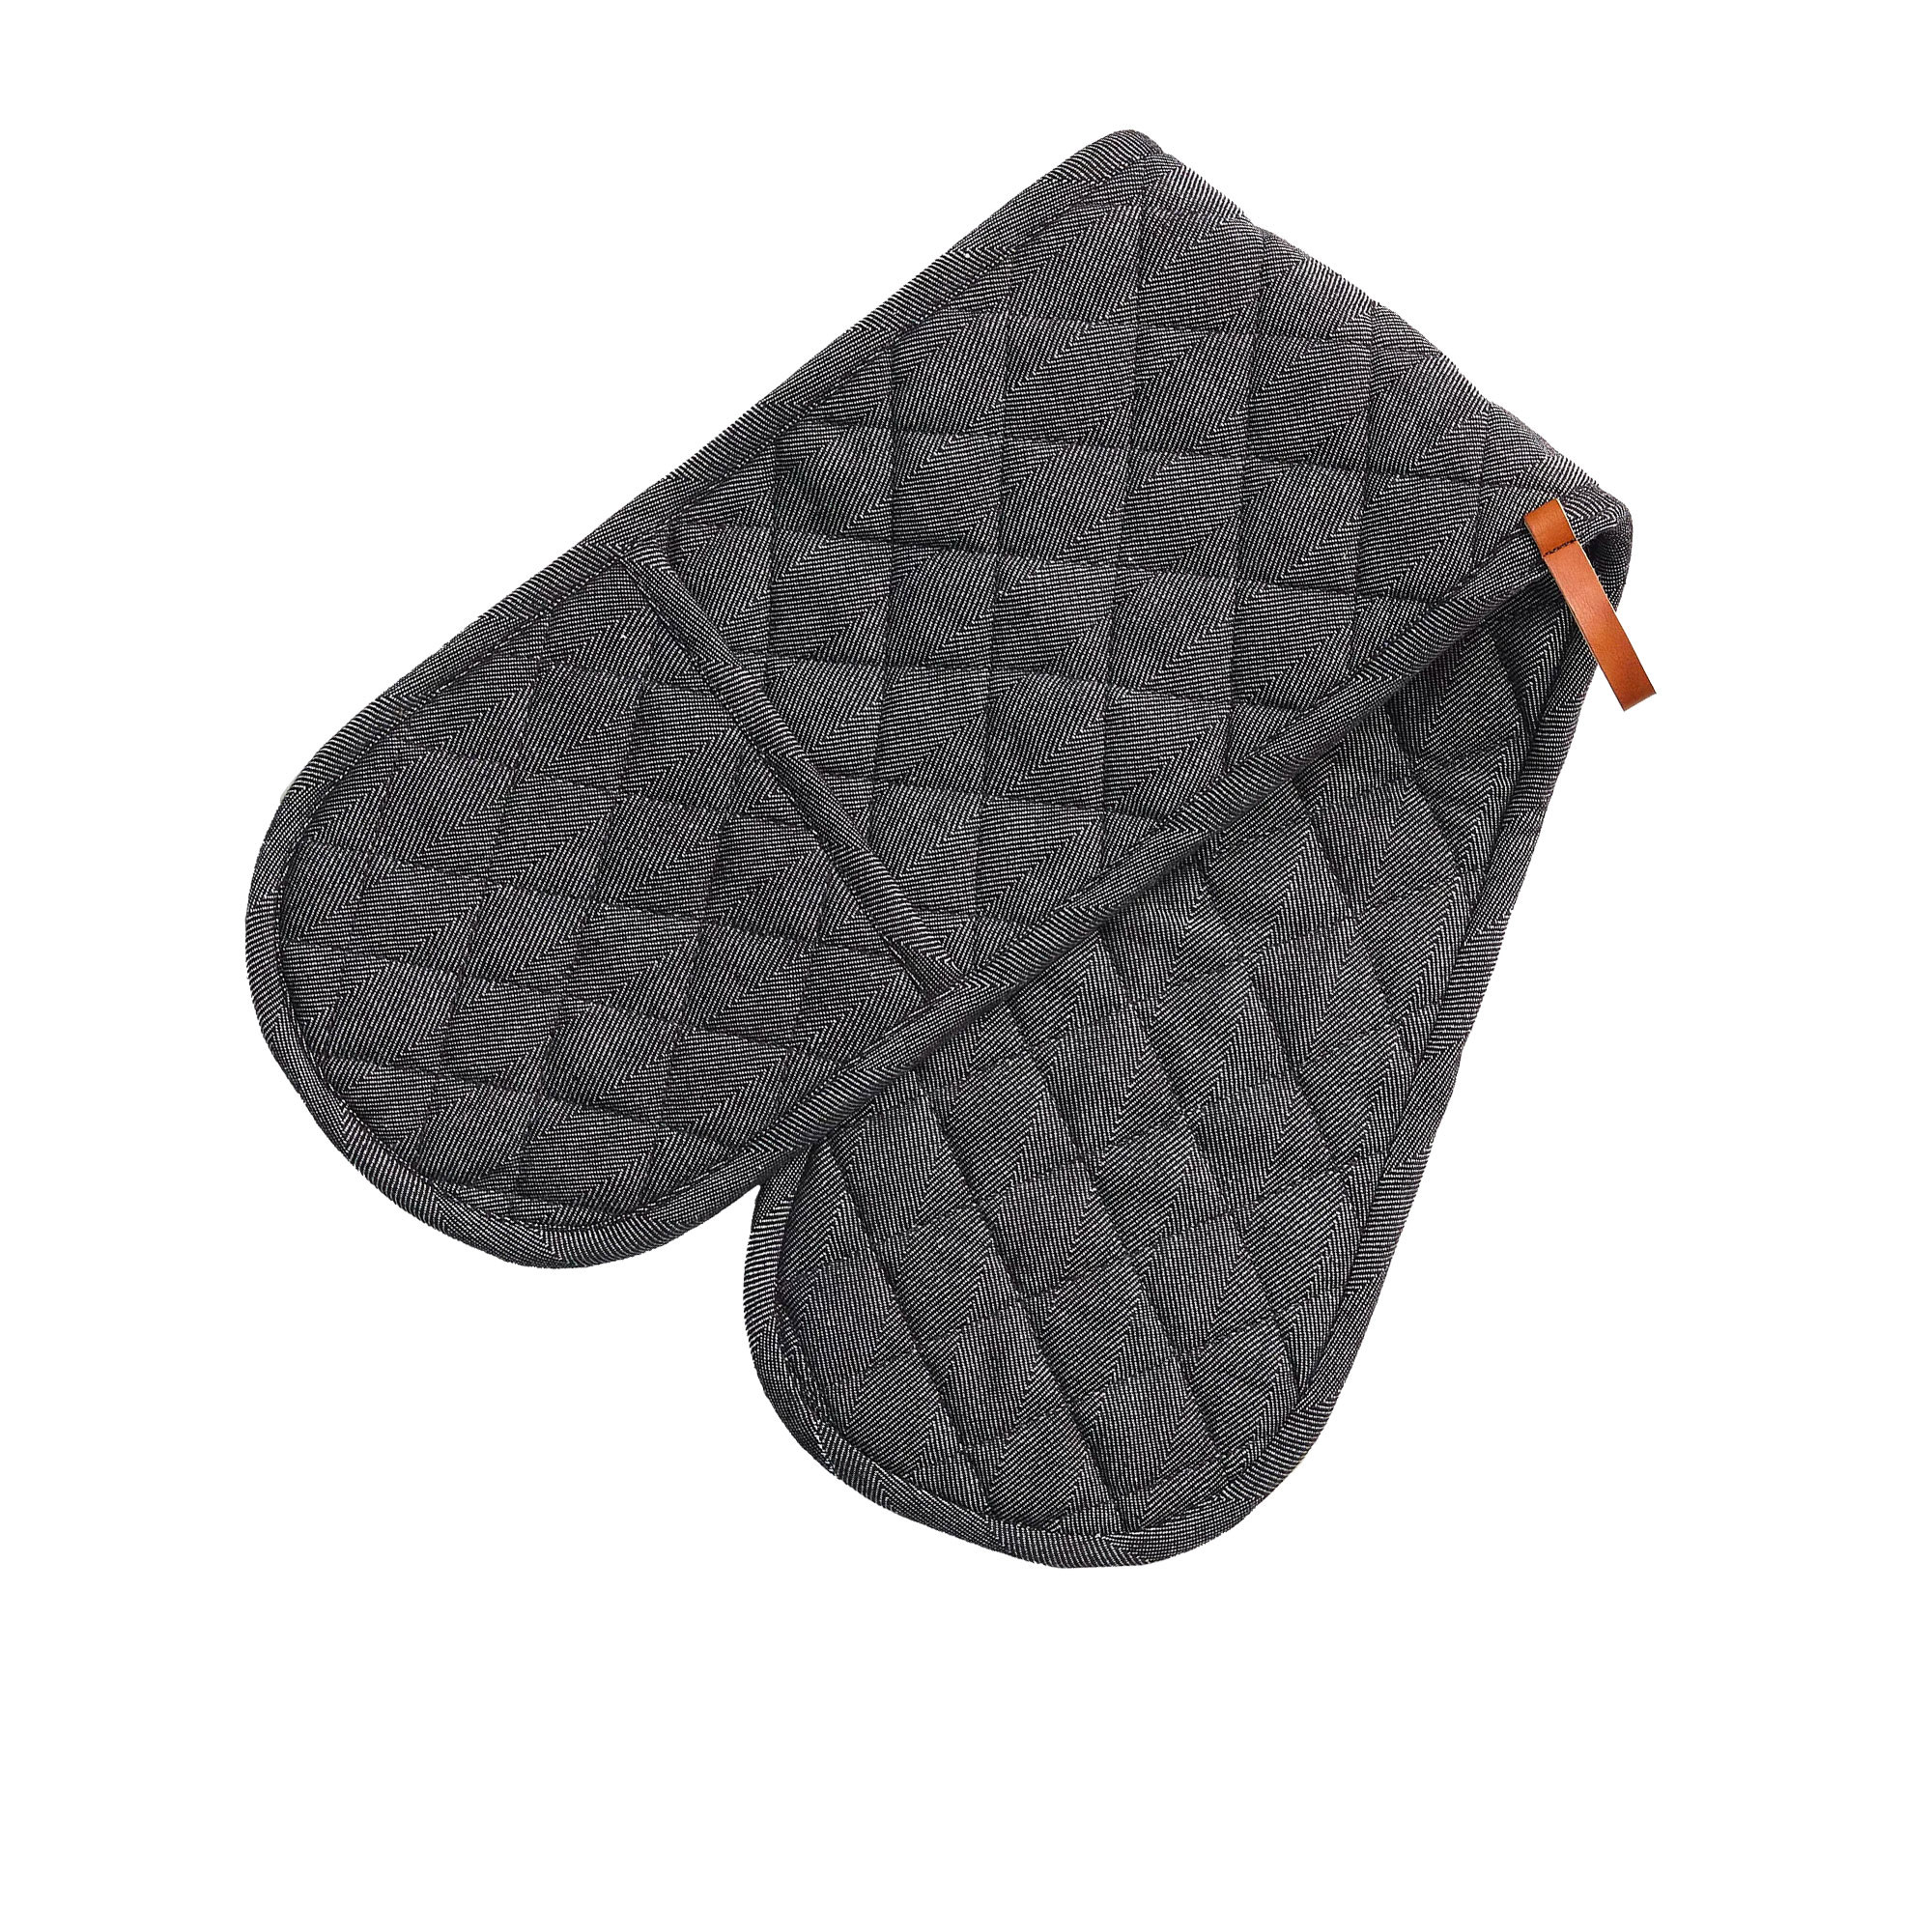 Salisbury & Co Hampstead Double Oven Mitt Black